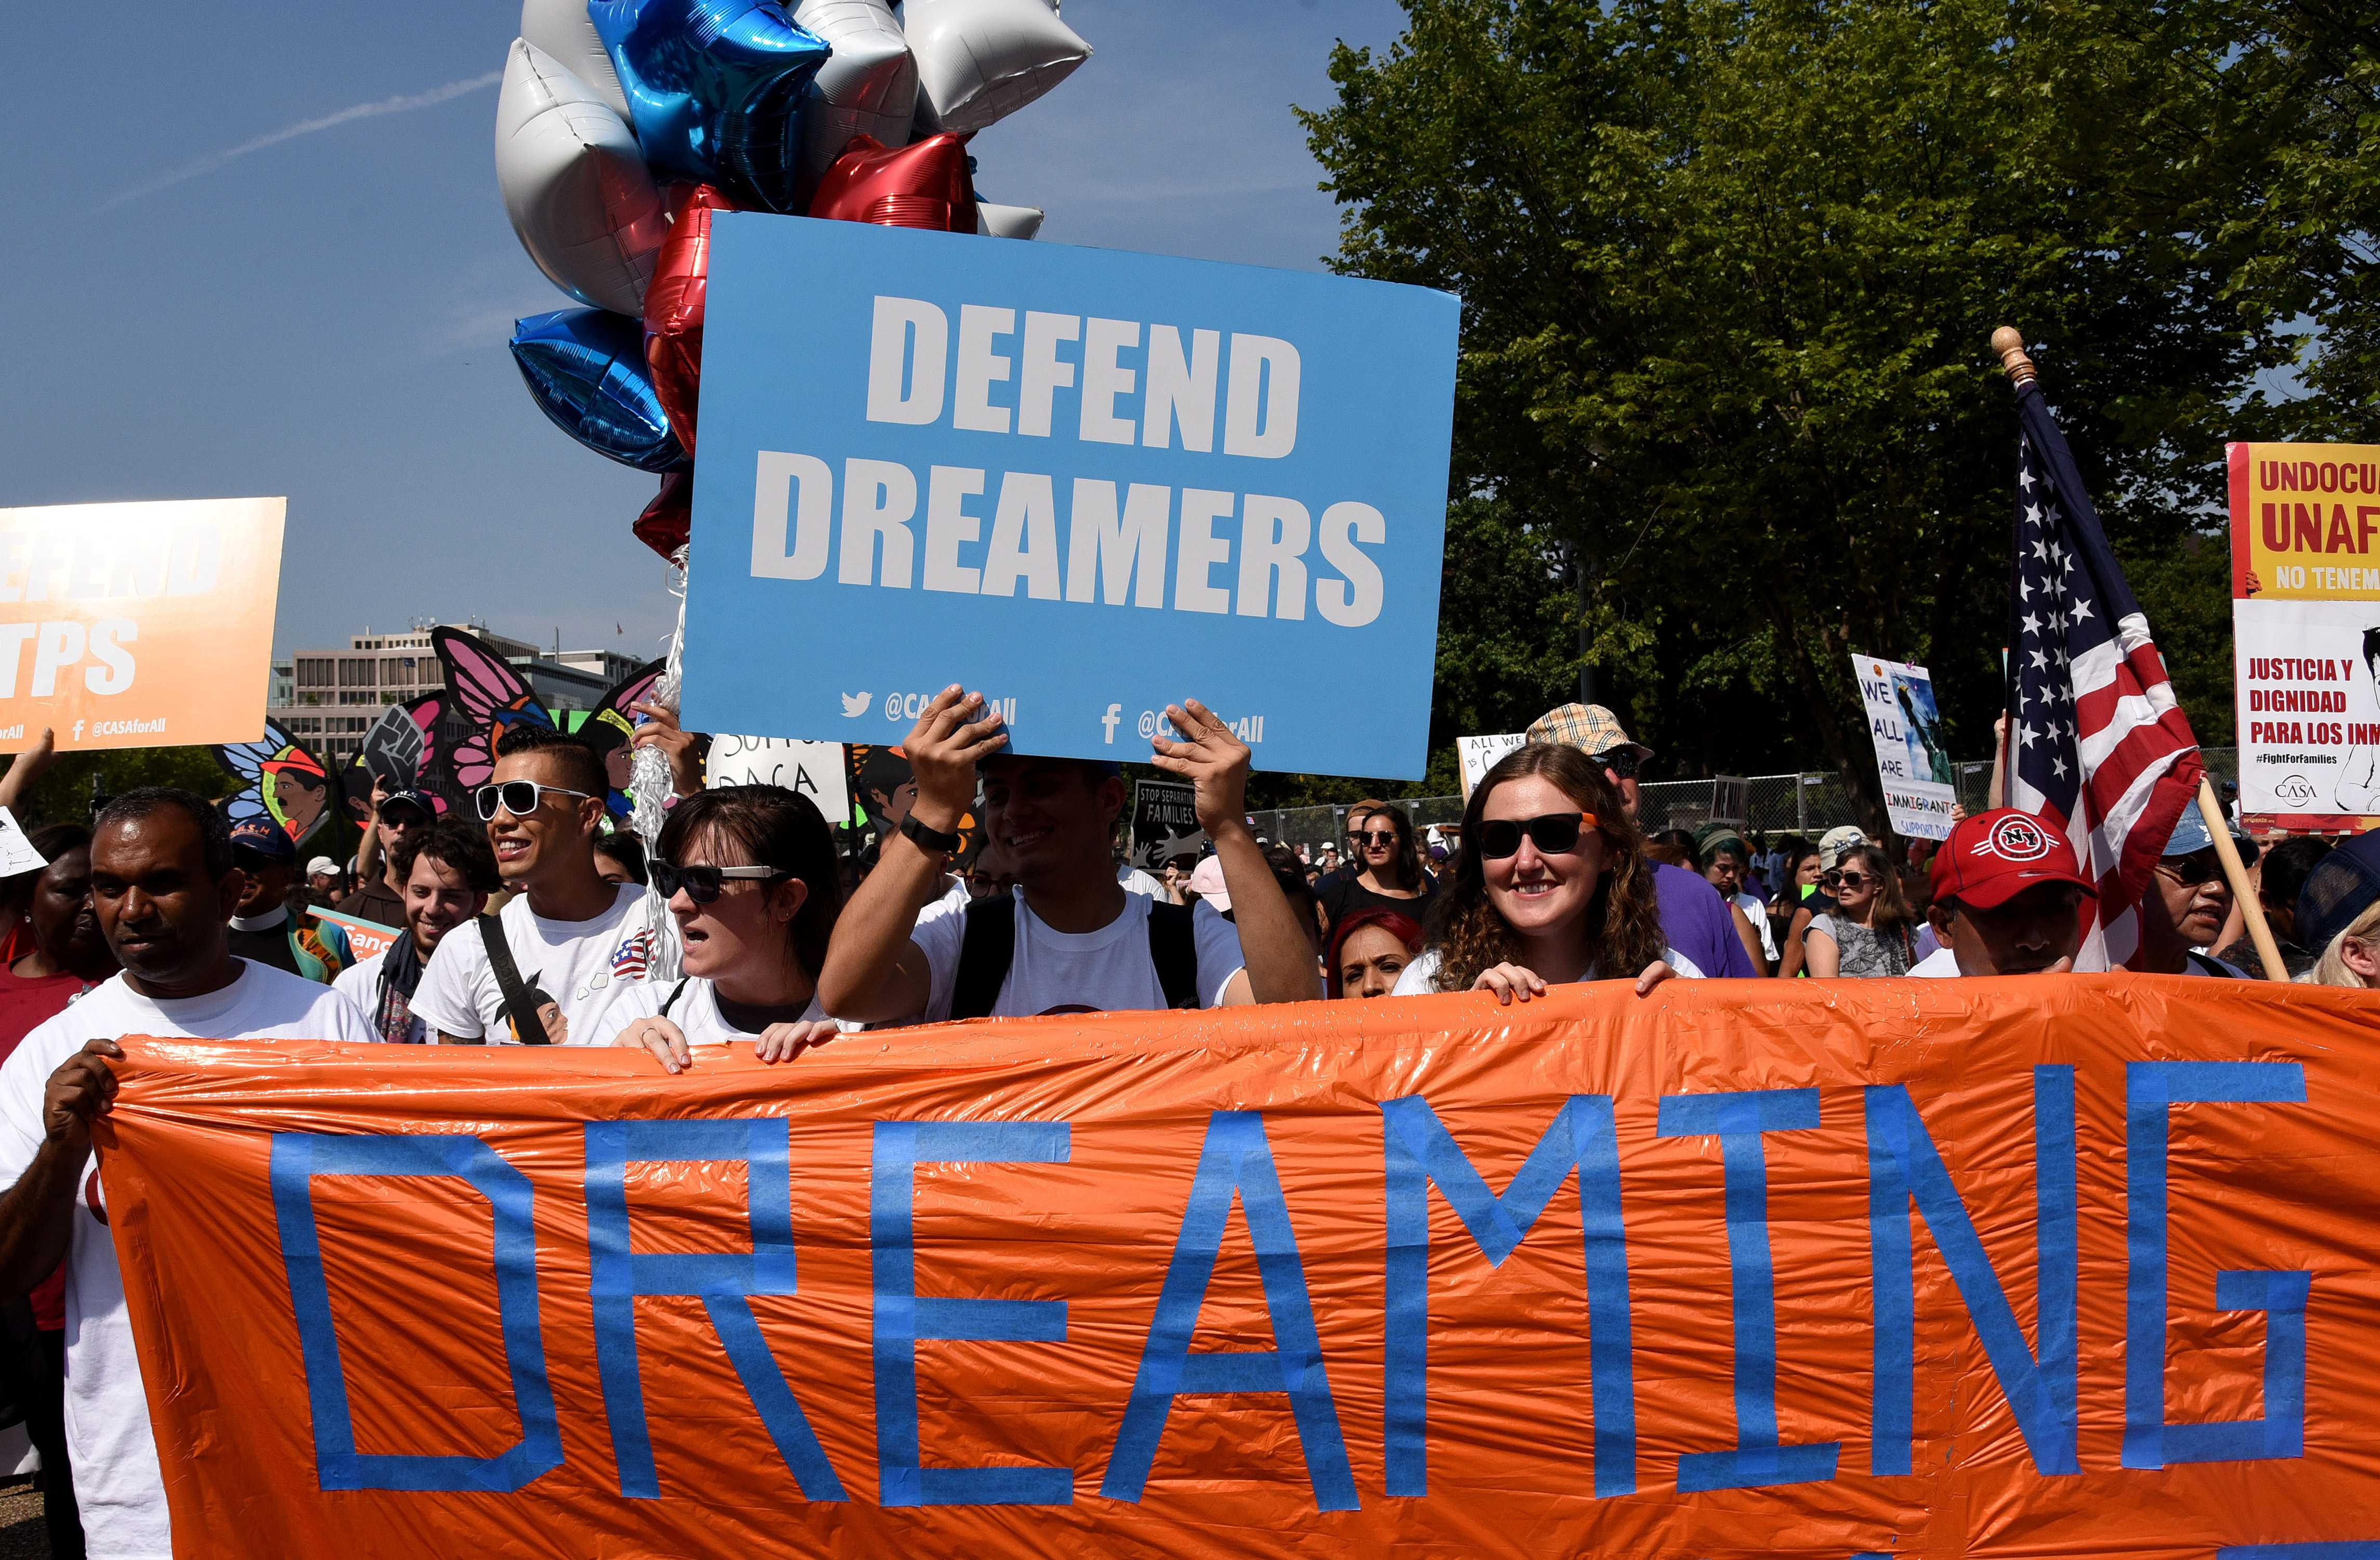 Protesters hold up signs during a rally supporting Deferred Action for Childhood Arrivals, or DACA, outside the White House on September 5, 2017. Thousands are expected to gather for rallies on Tuesday, when President Trump is slated to announce the future of the program. (Olivier Douliery/Abaca Press/TNS)